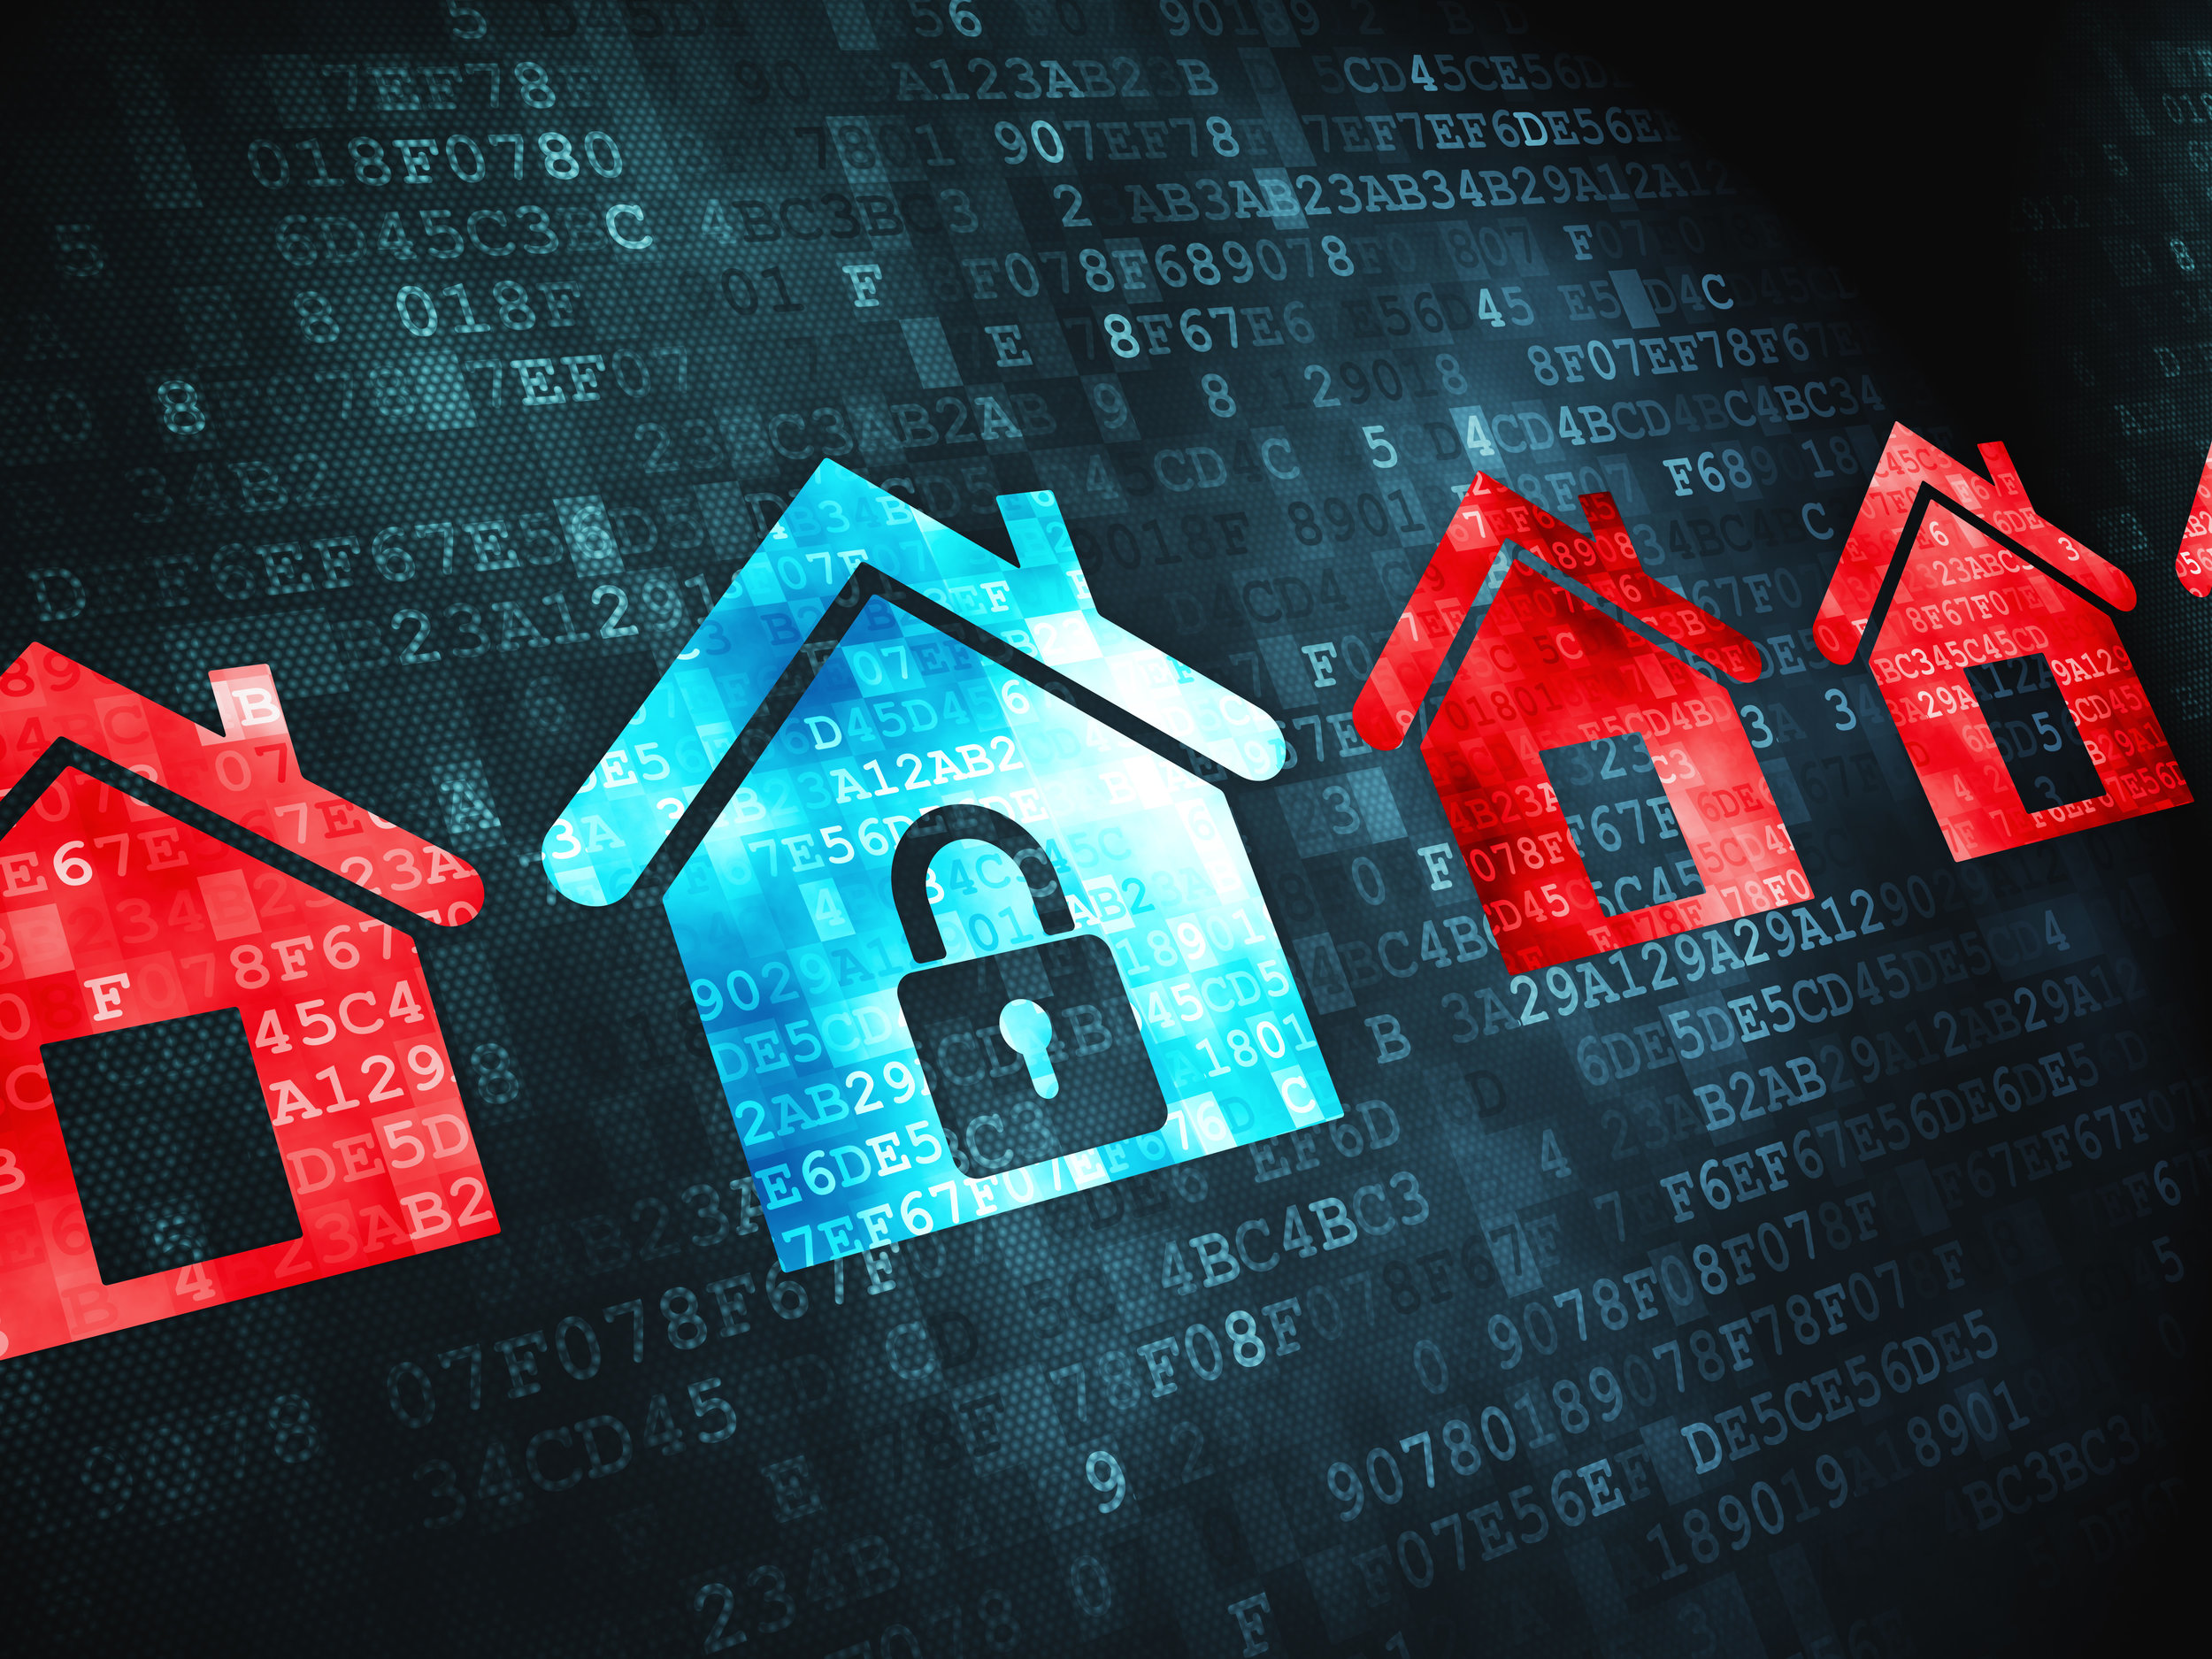 Houses_with_no_security_system_1_home_smart_home_security_system_blue_red